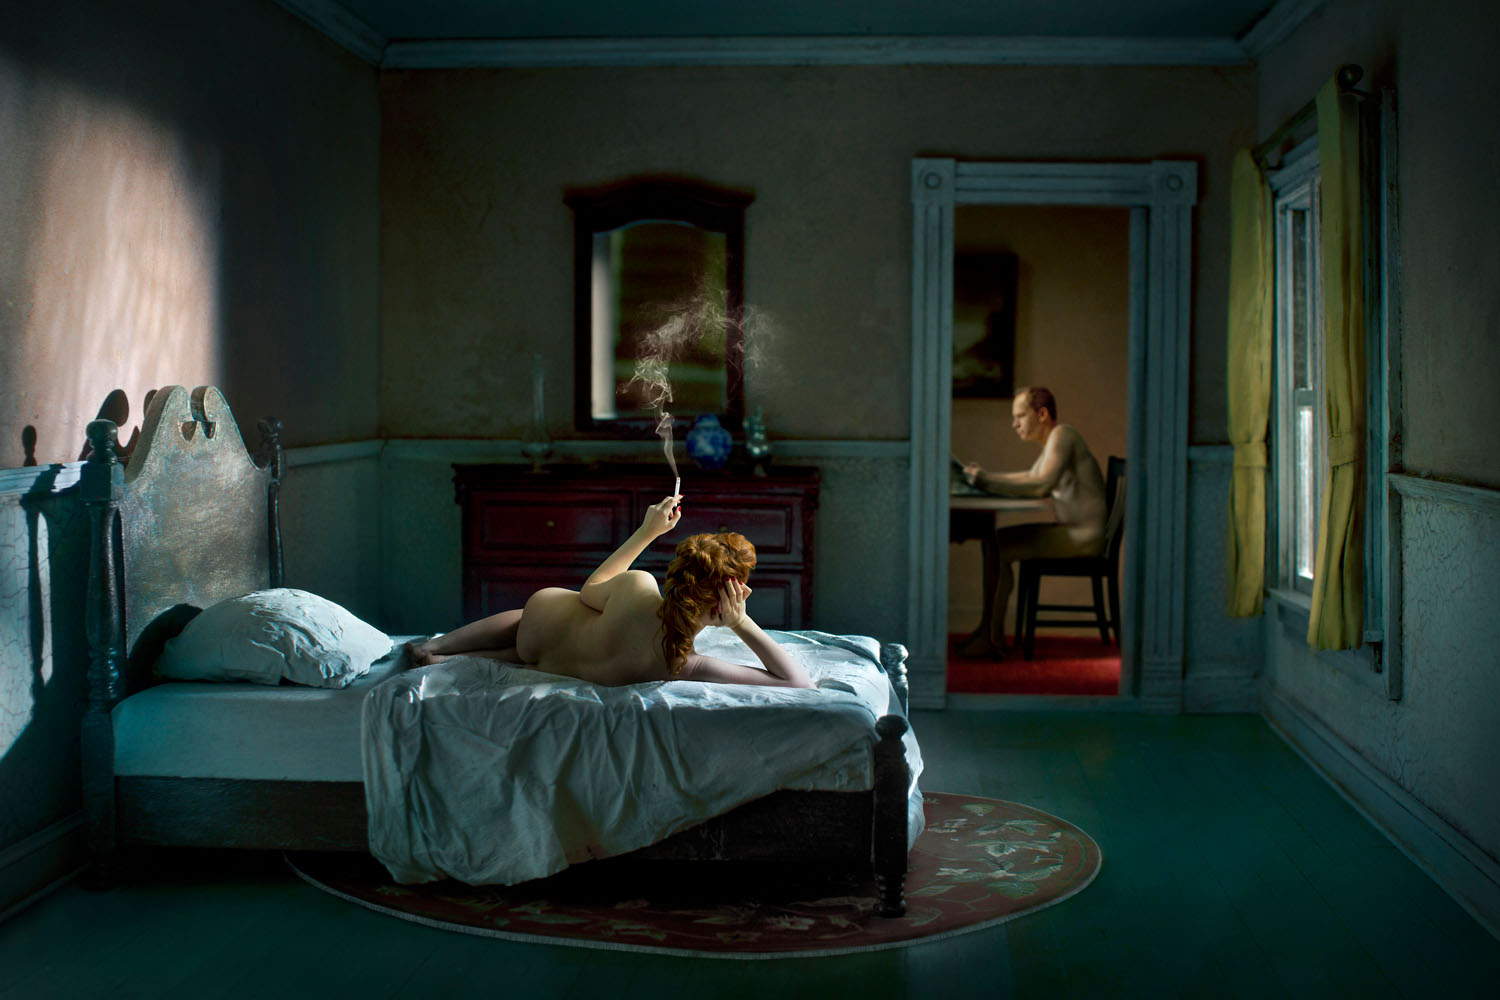 Pink Bedroom (Odalisque), (2013)